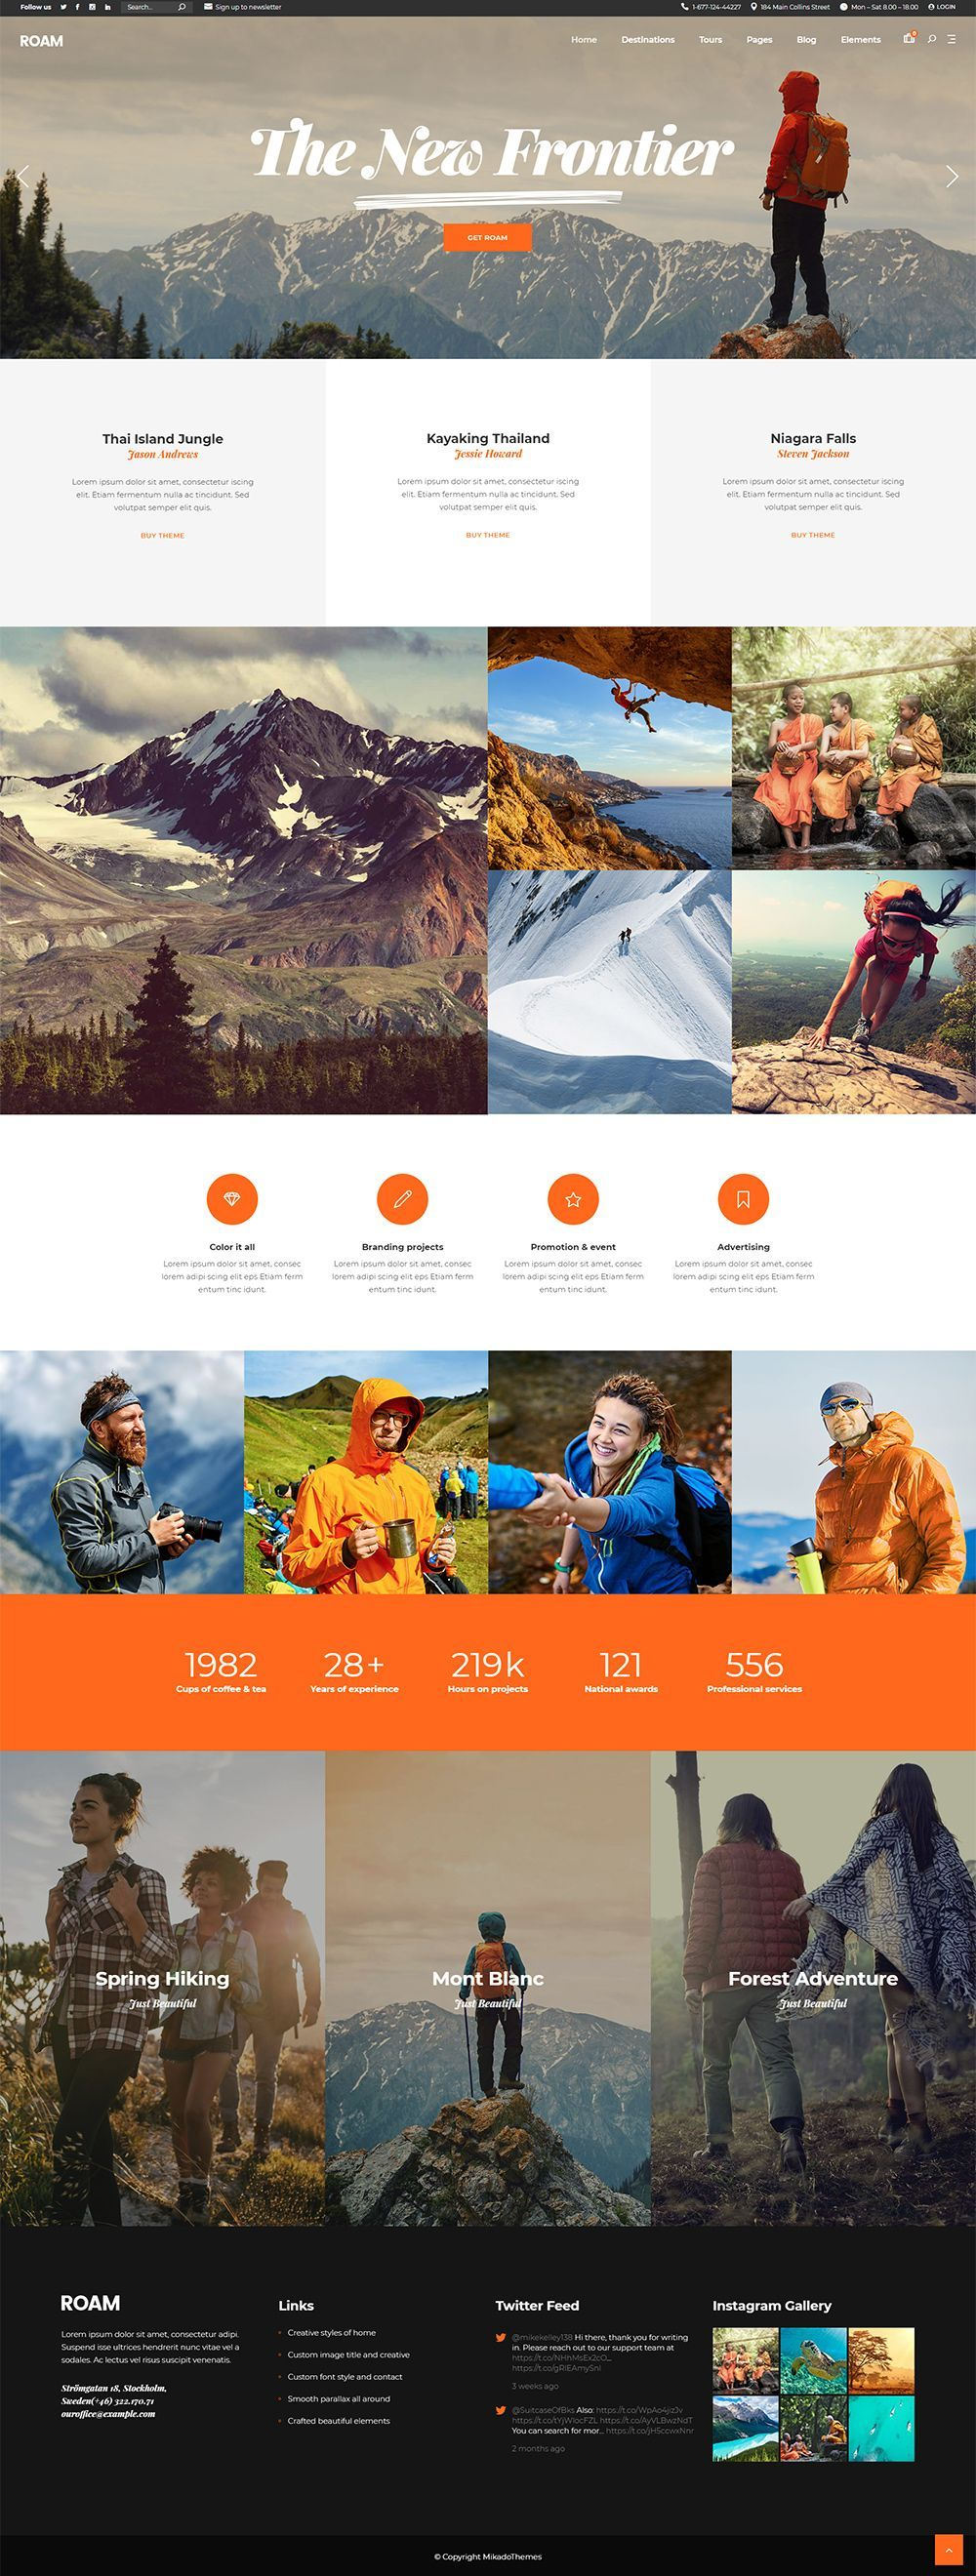 Start your online travel adventure today with Roam WordPress theme! #webdesign #design #layout #template #uxdesign #uidesign #travel #travelagency #responsive #wordpresslove #webdesigninspiration #responsivedesign #webdesigntrends #booking #tours #holidays #vacation #touroperator #travelblog